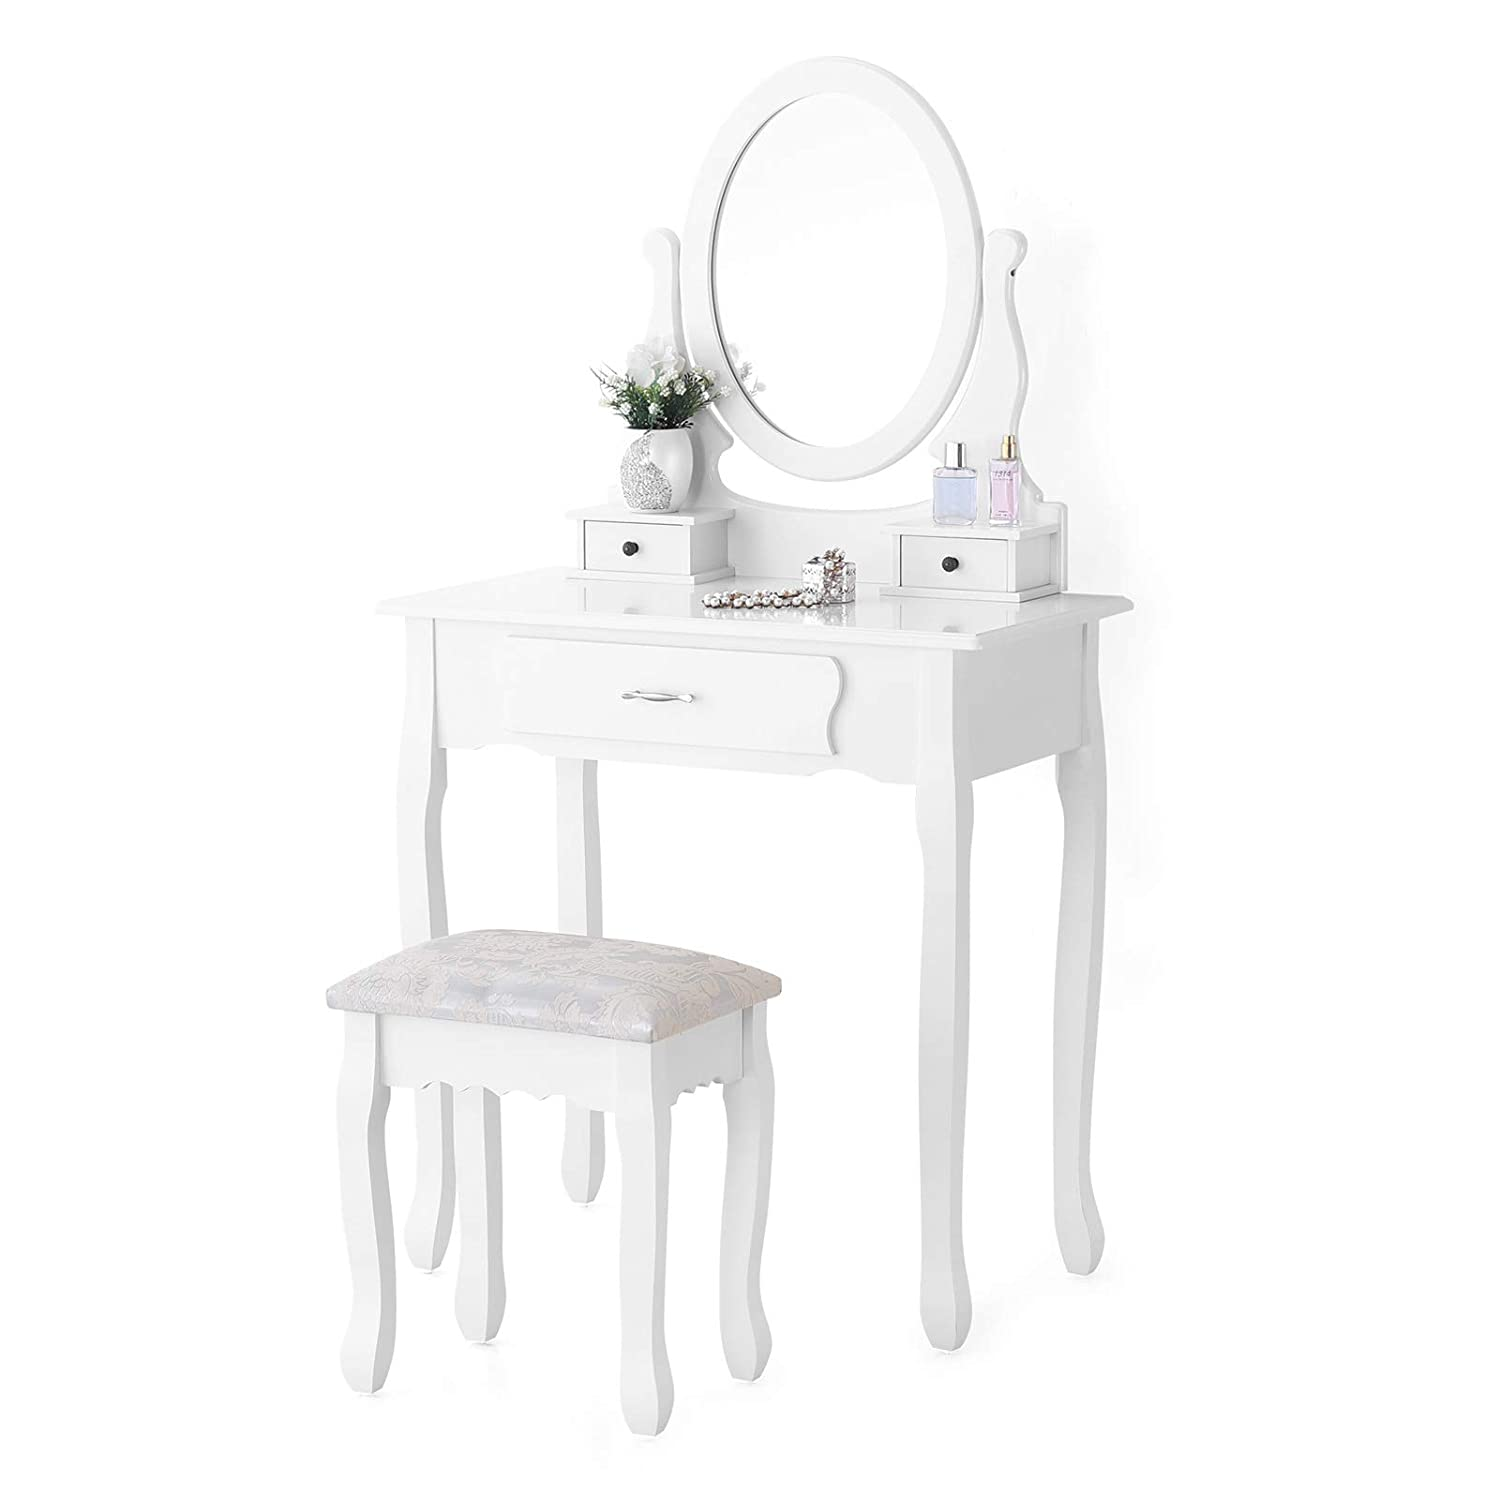 Mecor Girls Vanity Table Set with Oval Mirror/ 3 Drawers, Wood Makeup Dressing Table w/Cushioned Stool (Black) 1030303200